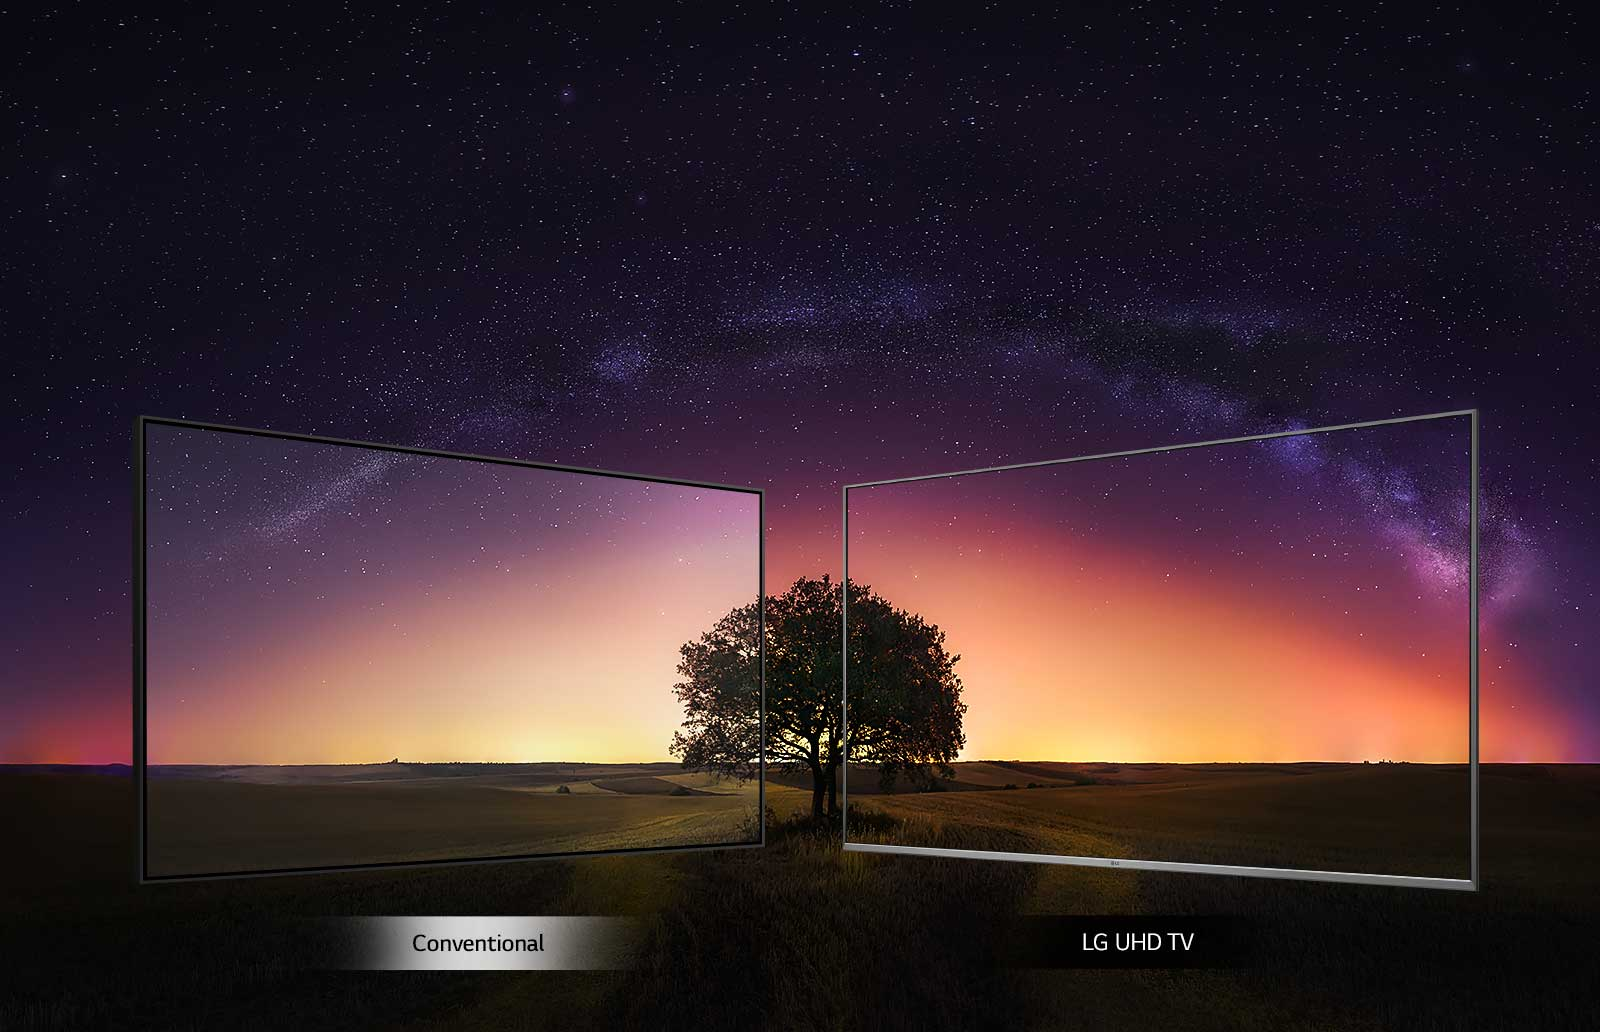 TV-UHD-UM76-03-Wide-Viewing-Angle-Desktop.jpg (1600×1032)